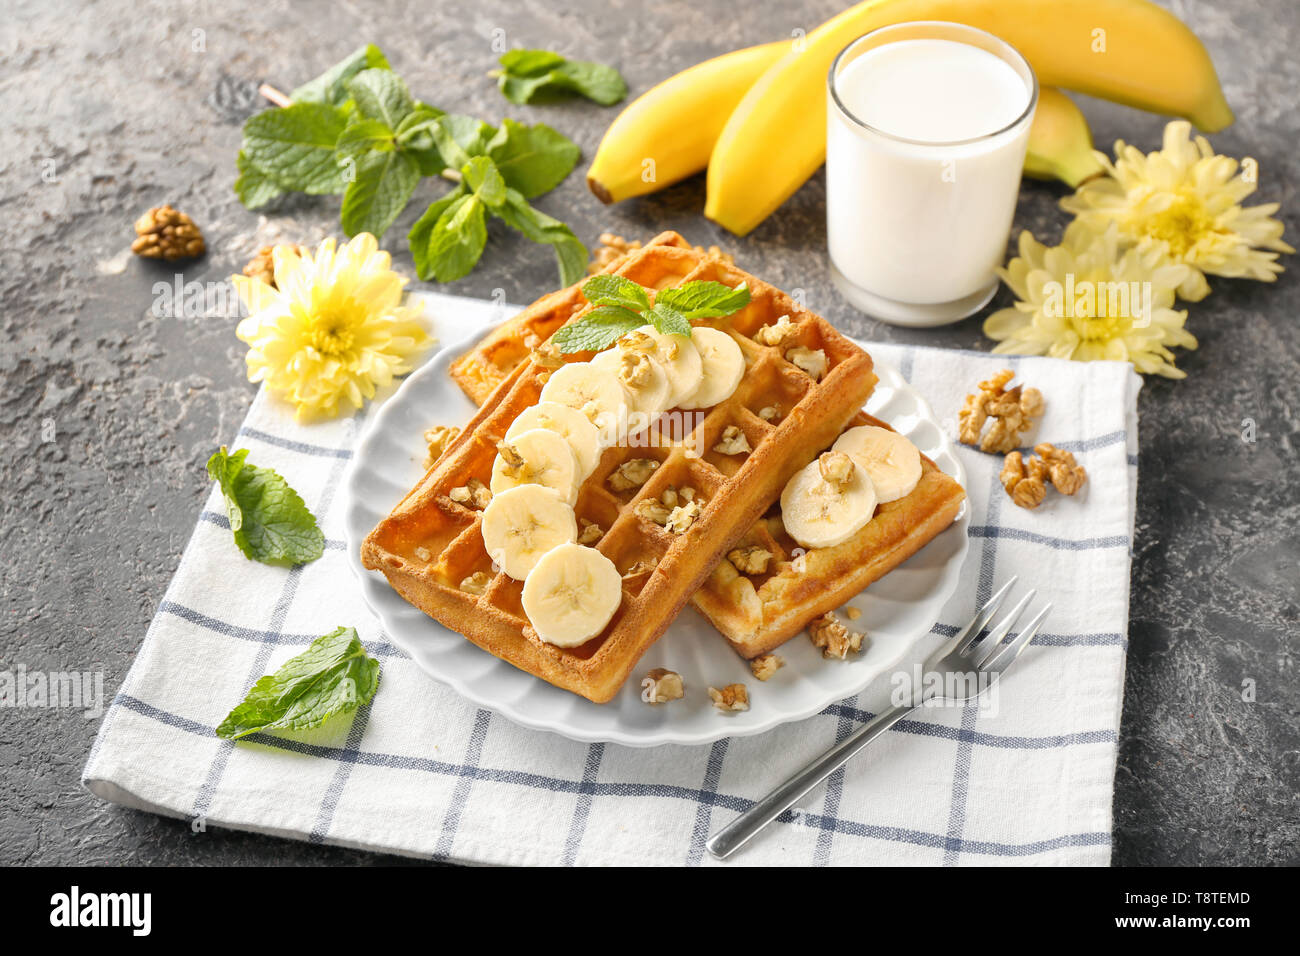 Delicious waffles with banana slices and glass of milk on grey table - Stock Image